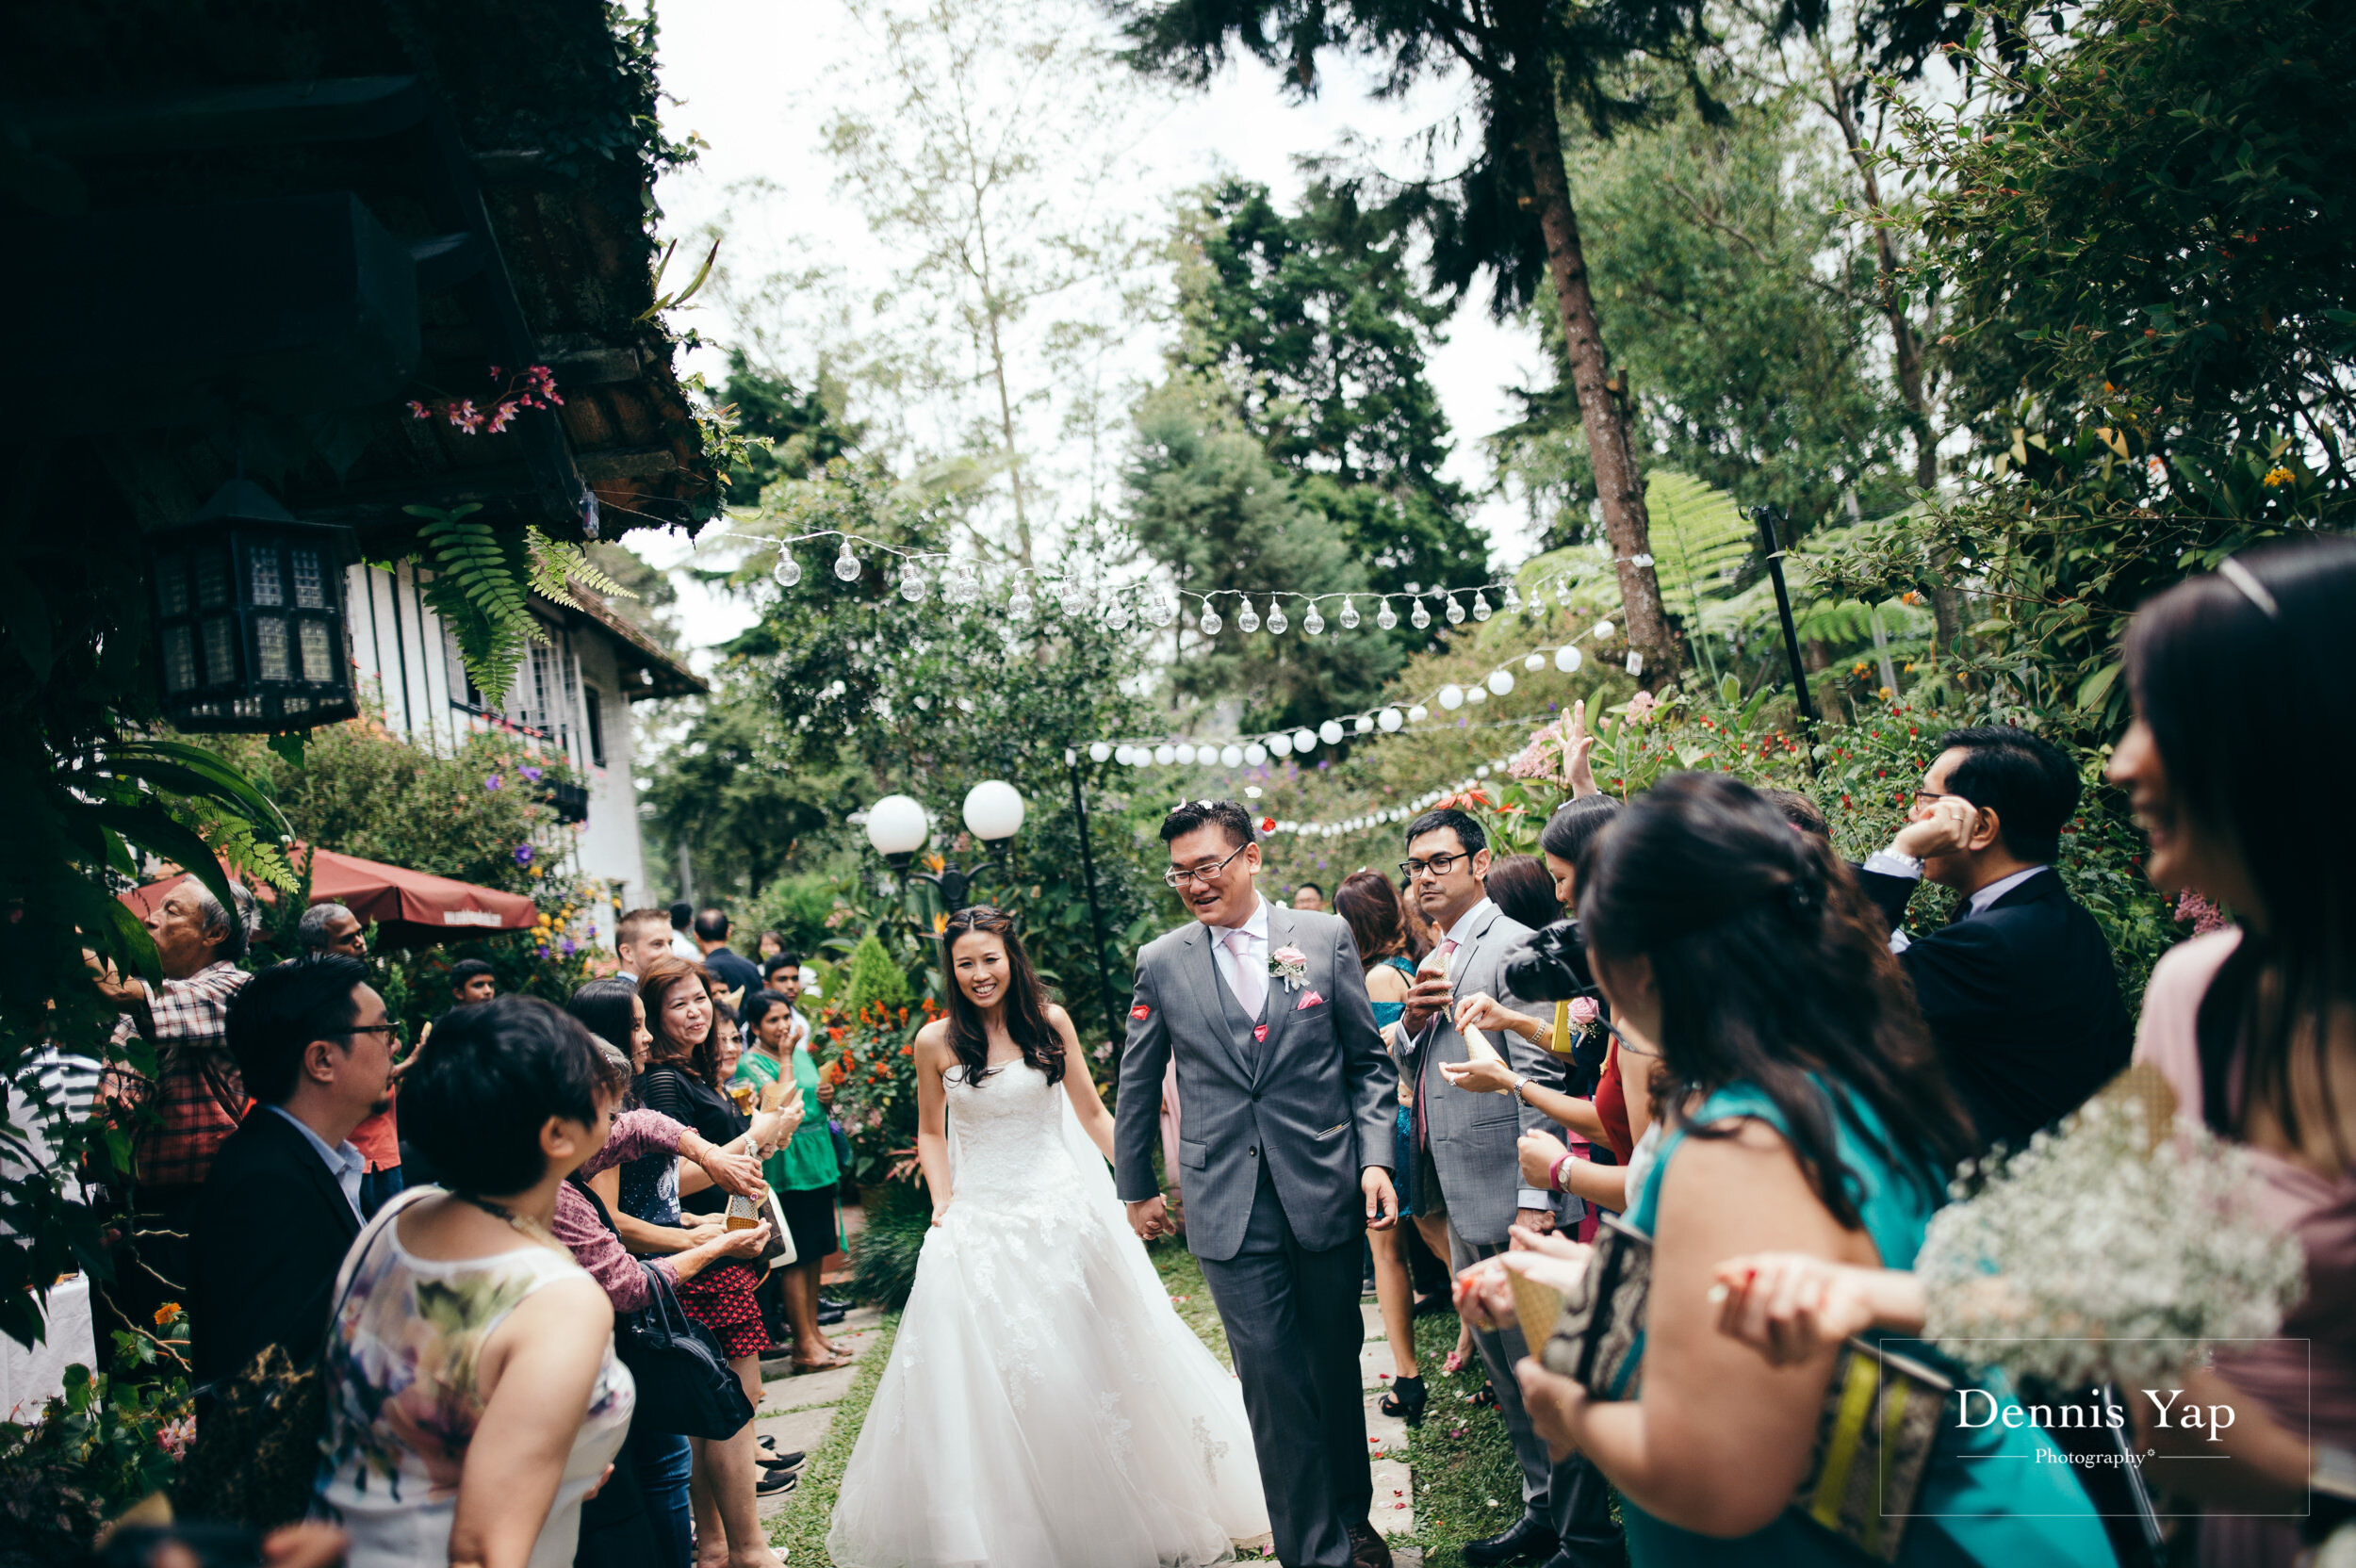 alex siowli wedding reception cameron highlands smoke house dennis yap photography malaysia traditional church wedding-128.jpg